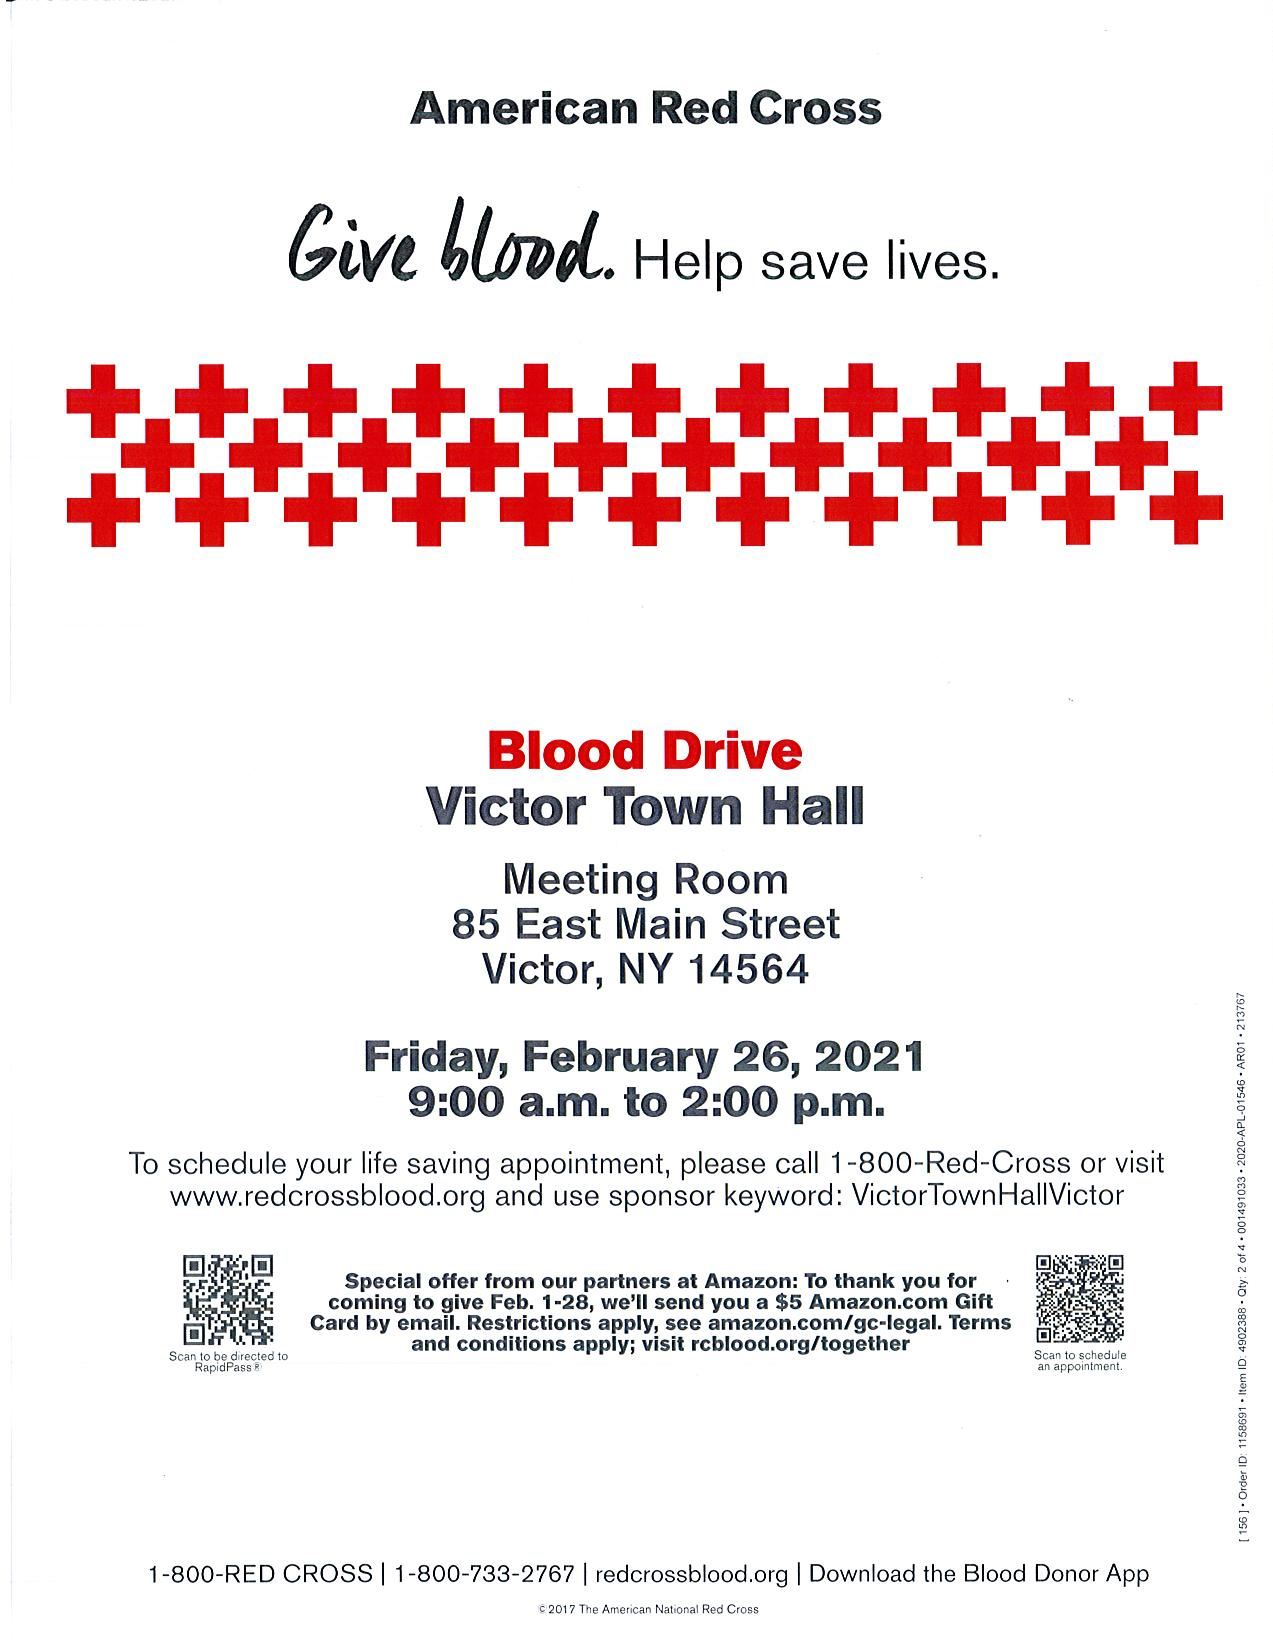 Blood Drive flyer text and red crosses